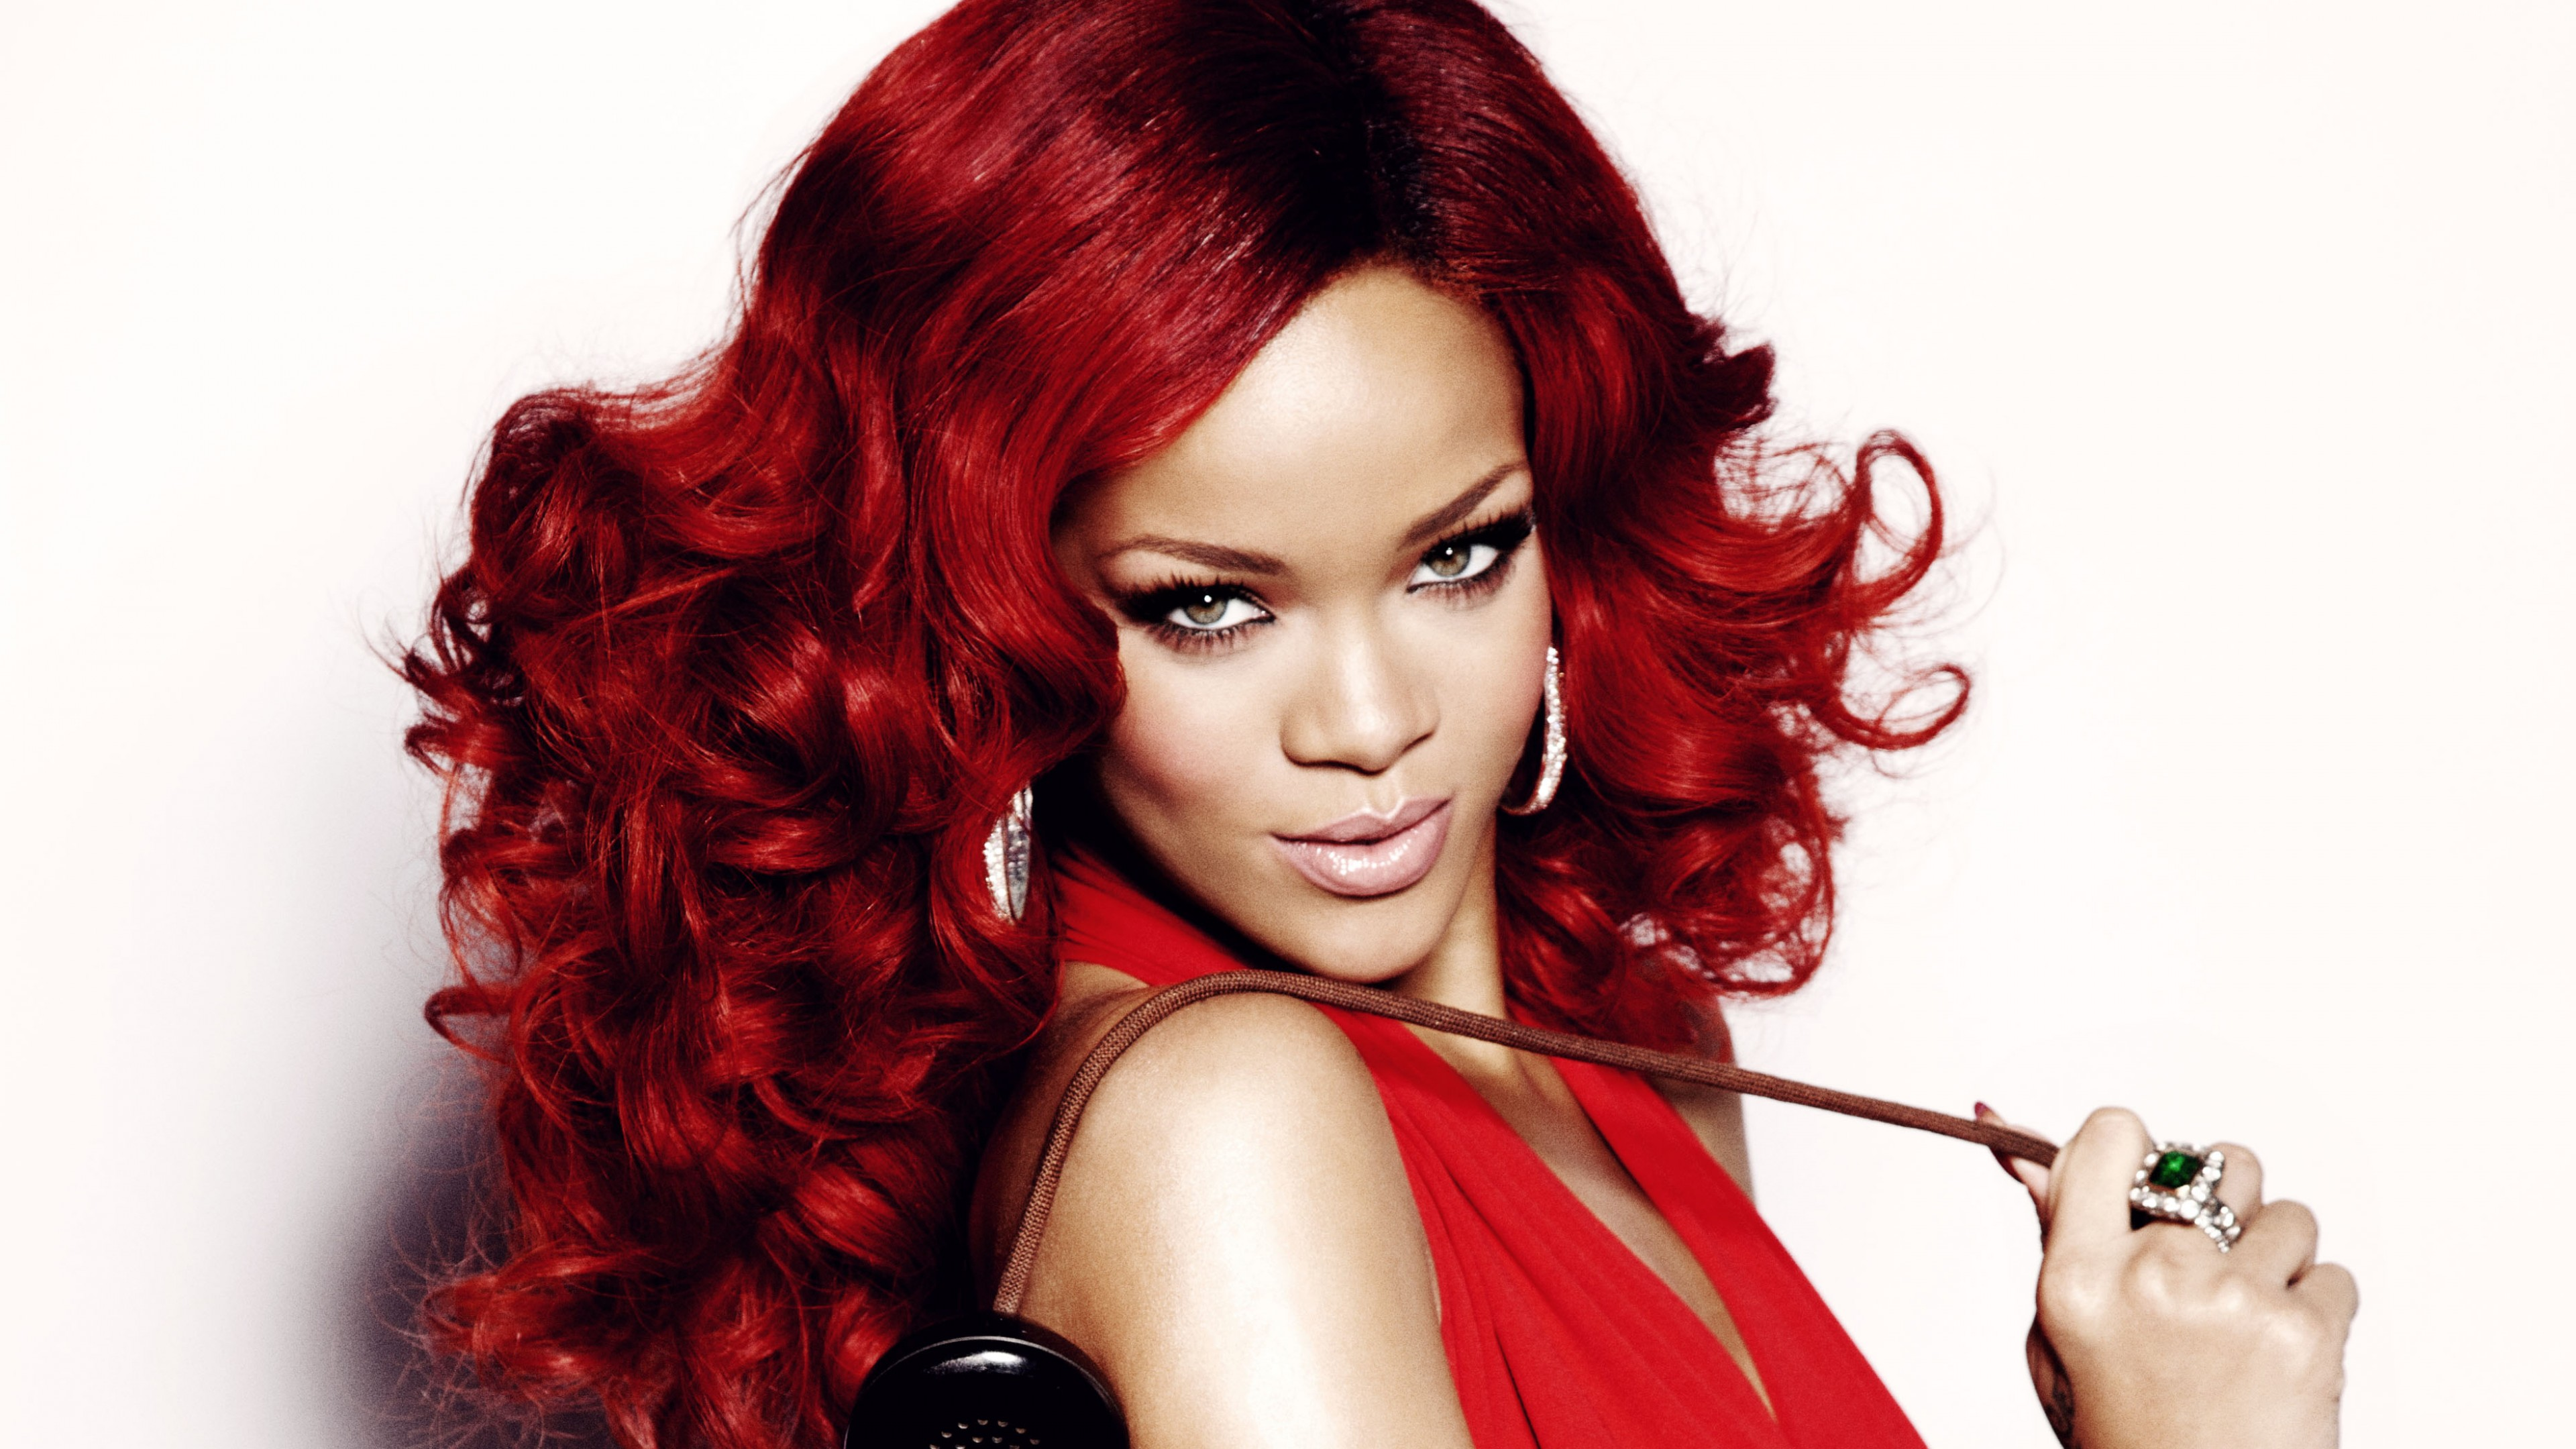 Wallpaper Rihanna, Most Popular Celebs in 2015, singer, music, actress, red hair, look, Music